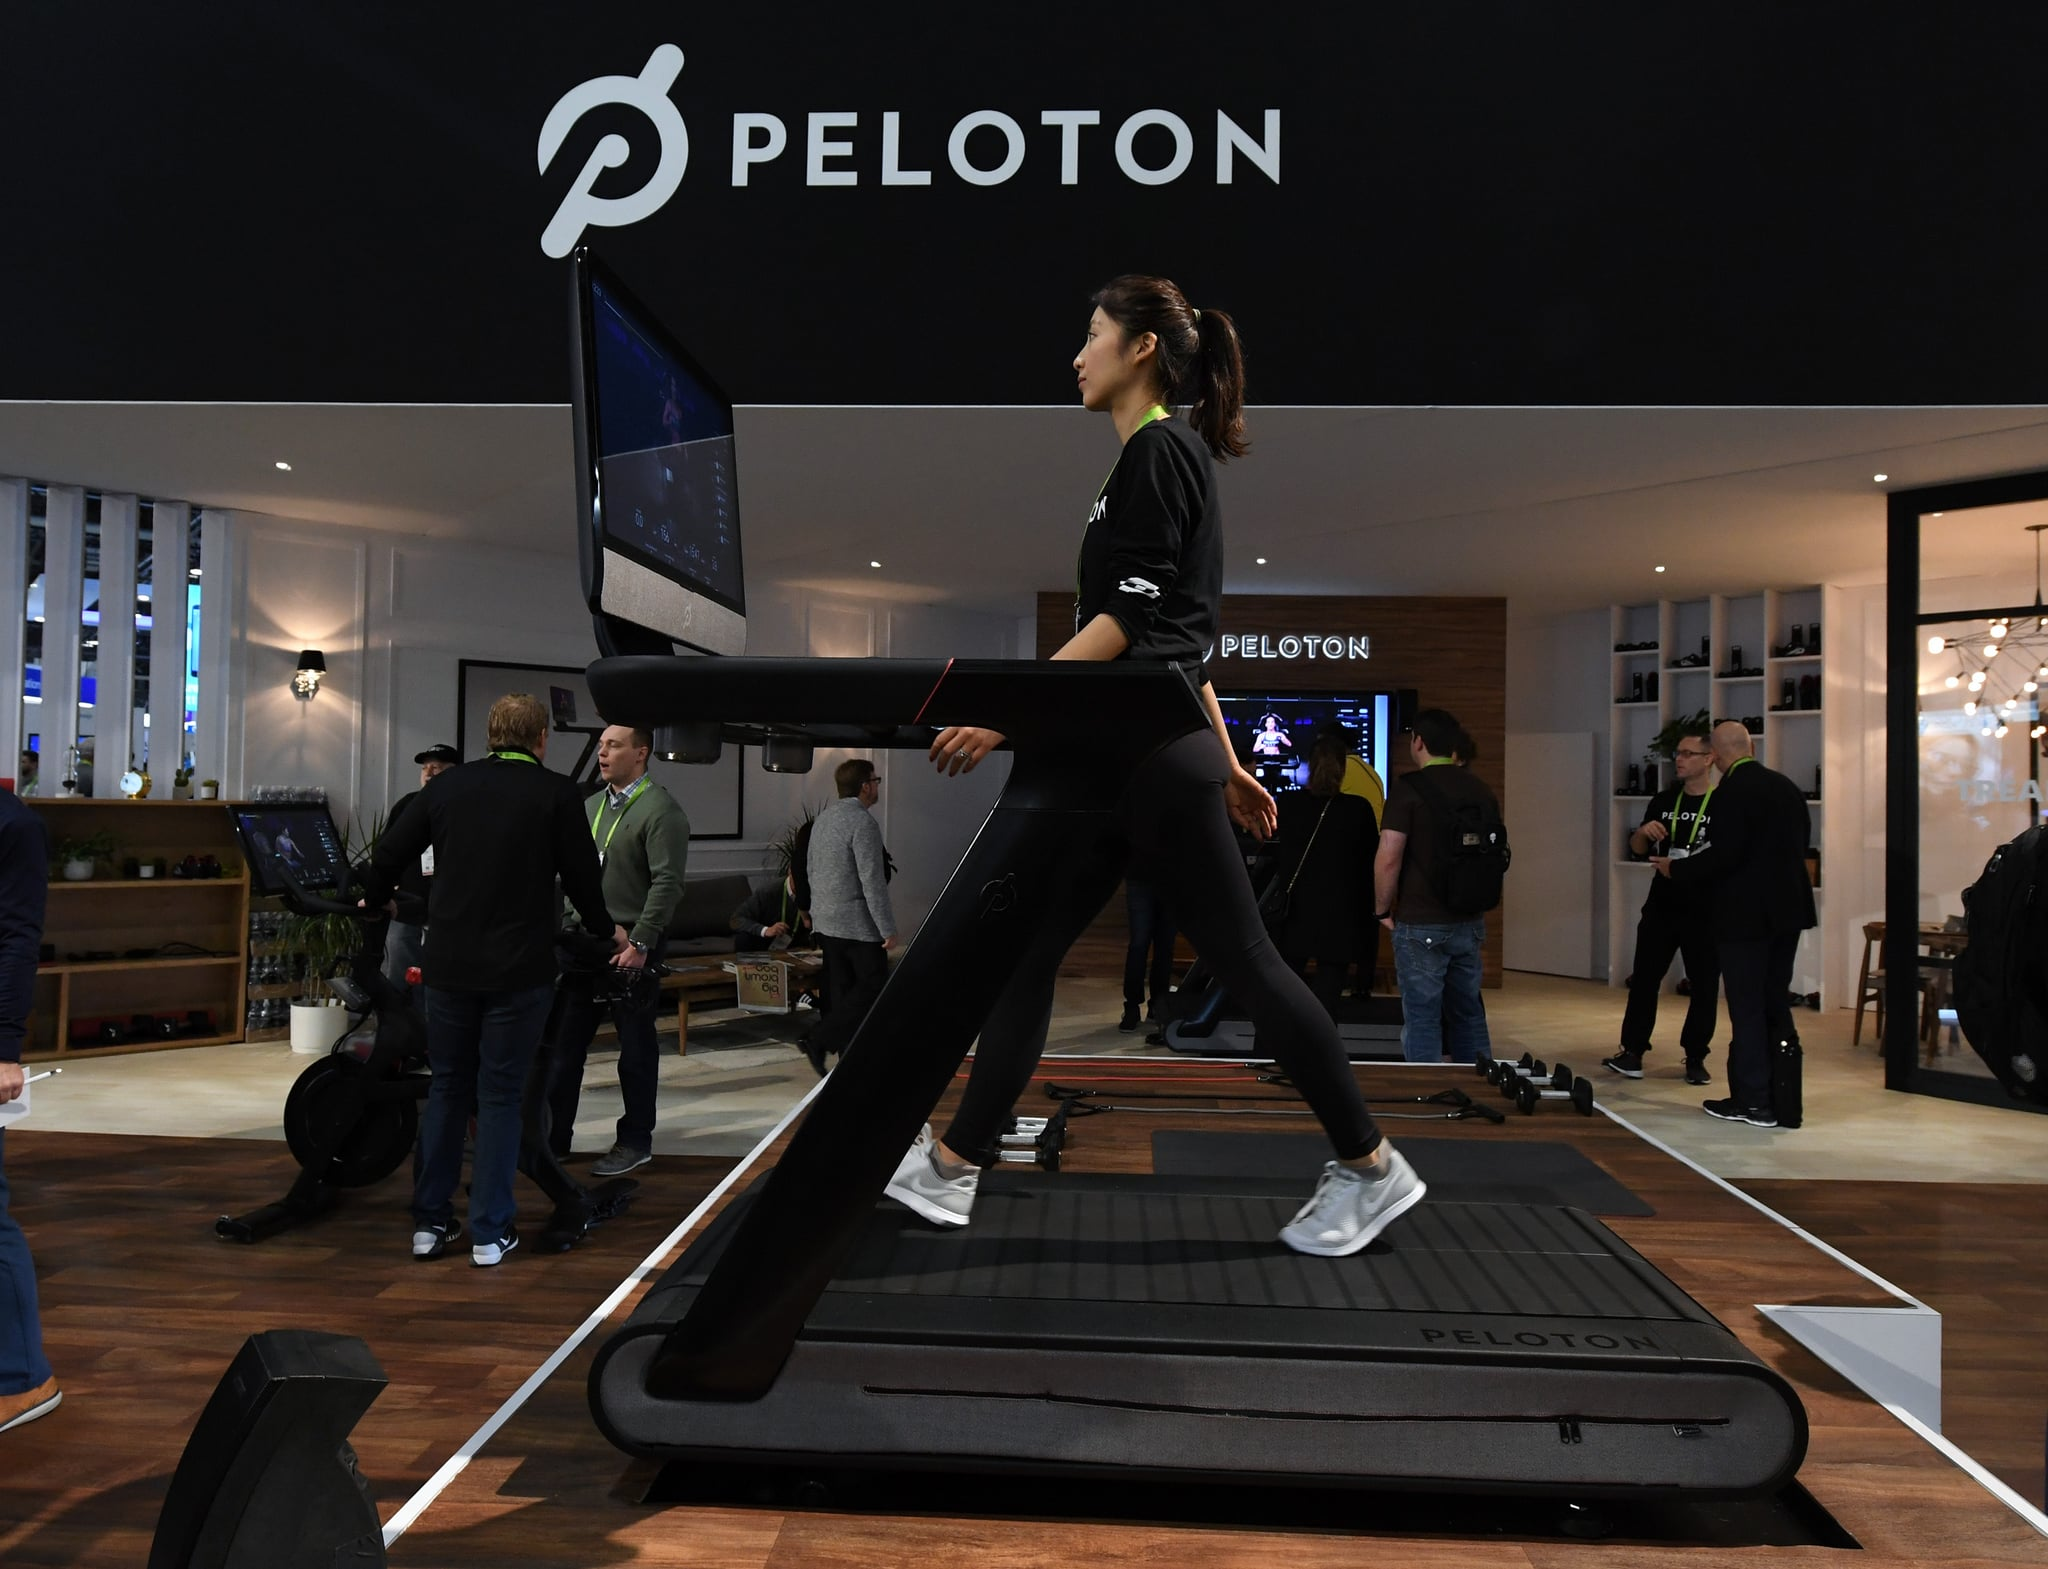 LAS VEGAS, NV - JANUARY 11:  Maggie Lu uses a Peloton Tread treadmill during CES 2018 at the Las Vegas Convention Center on January 11, 2018 in Las Vegas, Nevada. The USD 3,995 workout machine is expected to be available later this year and features a 32-inch touch screen that connects users to instructors giving live or on-demand fitness classes. CES, the world's largest annual consumer technology trade show, runs through January 12 and features about 3,900 exhibitors showing off their latest products and services to more than 170,000 attendees.  (Photo by Ethan Miller/Getty Images)